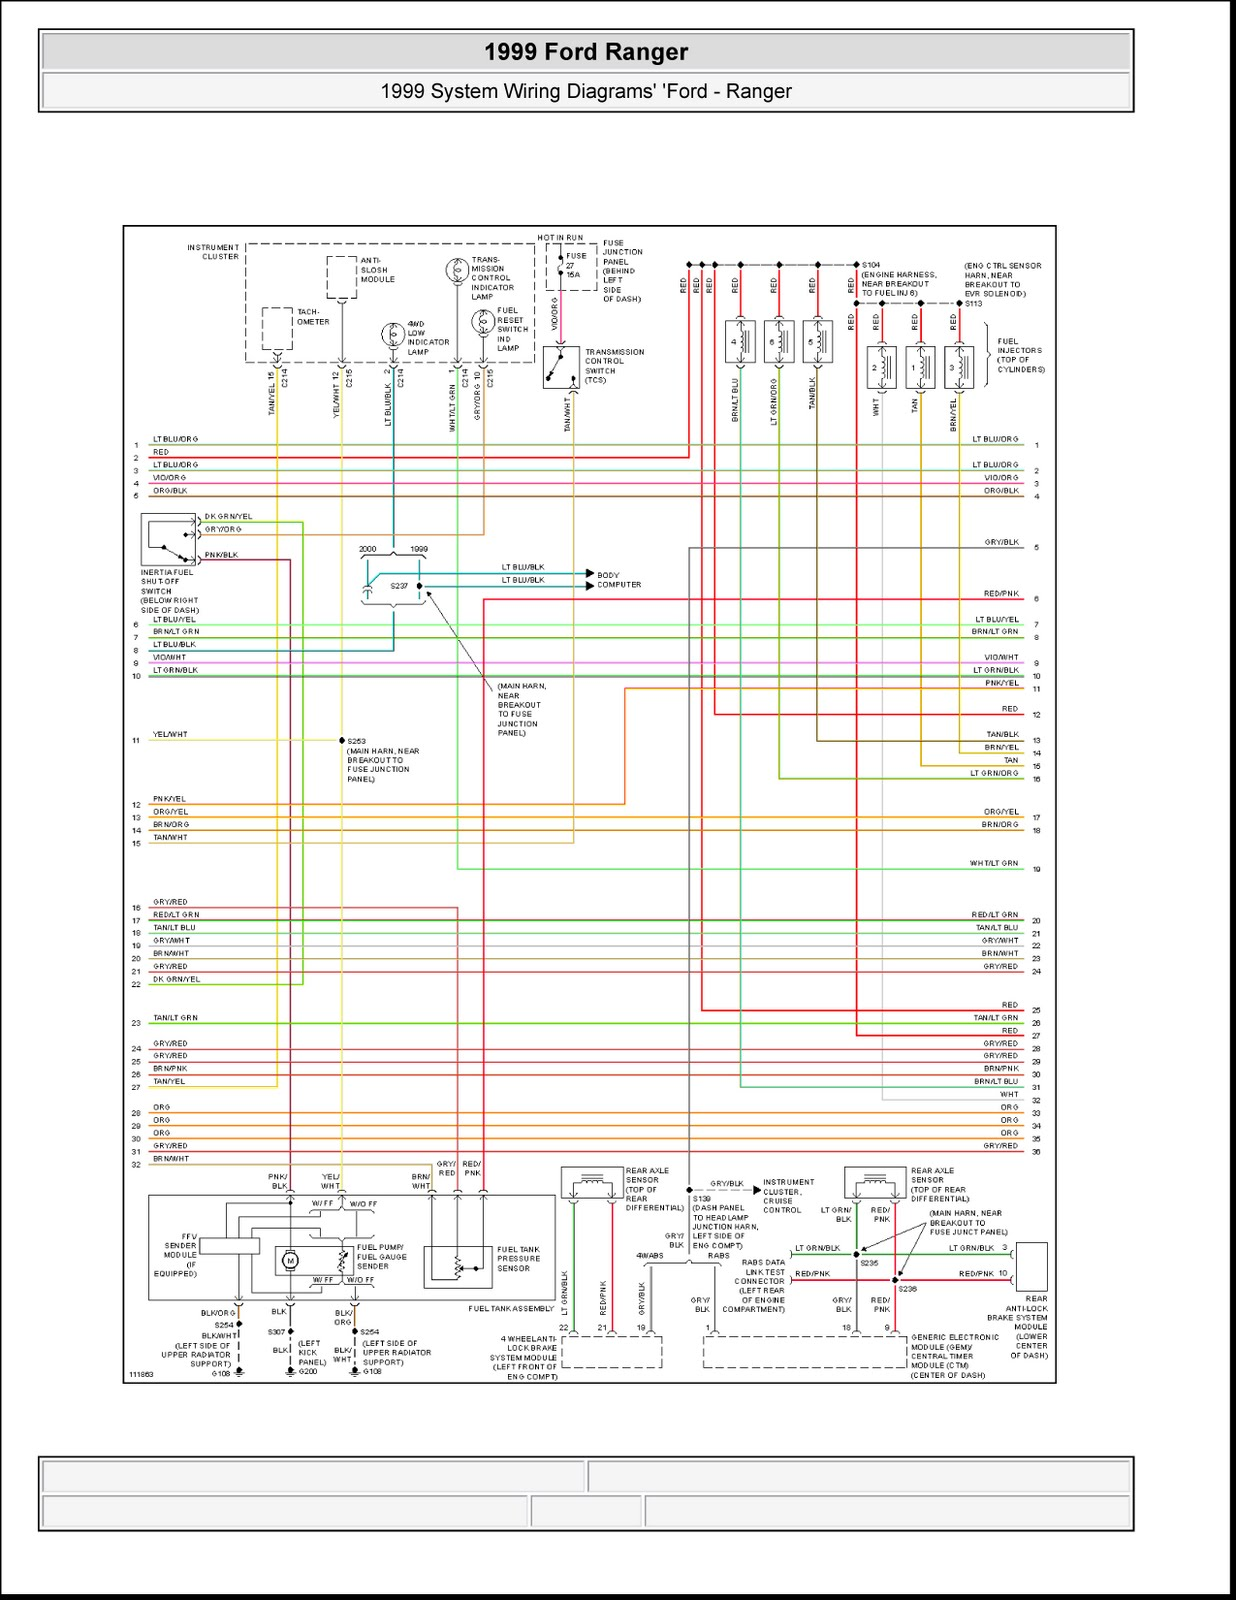 medium resolution of 1999 ford ranger system wiring diagrams 4 images ford ranger electrical diagram ford ranger electrical diagram